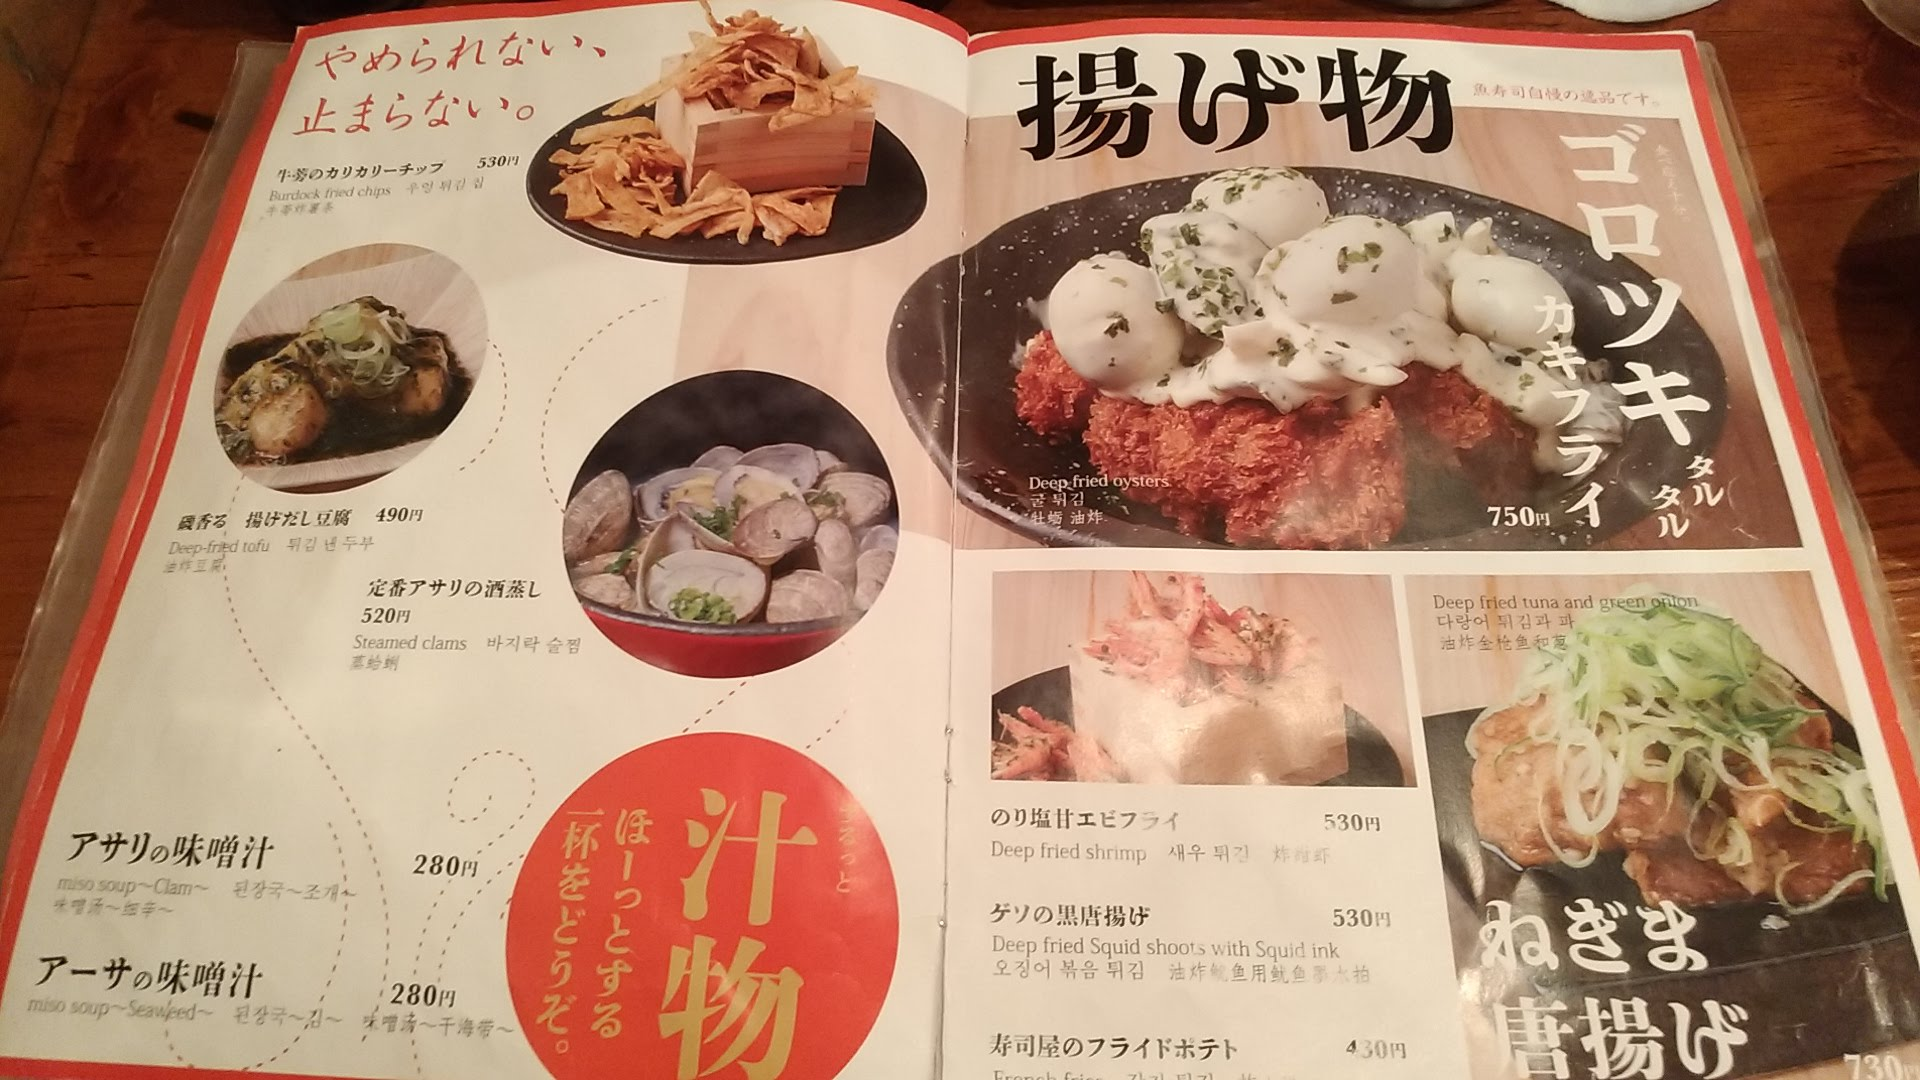 The menu of Sakana sushi 6